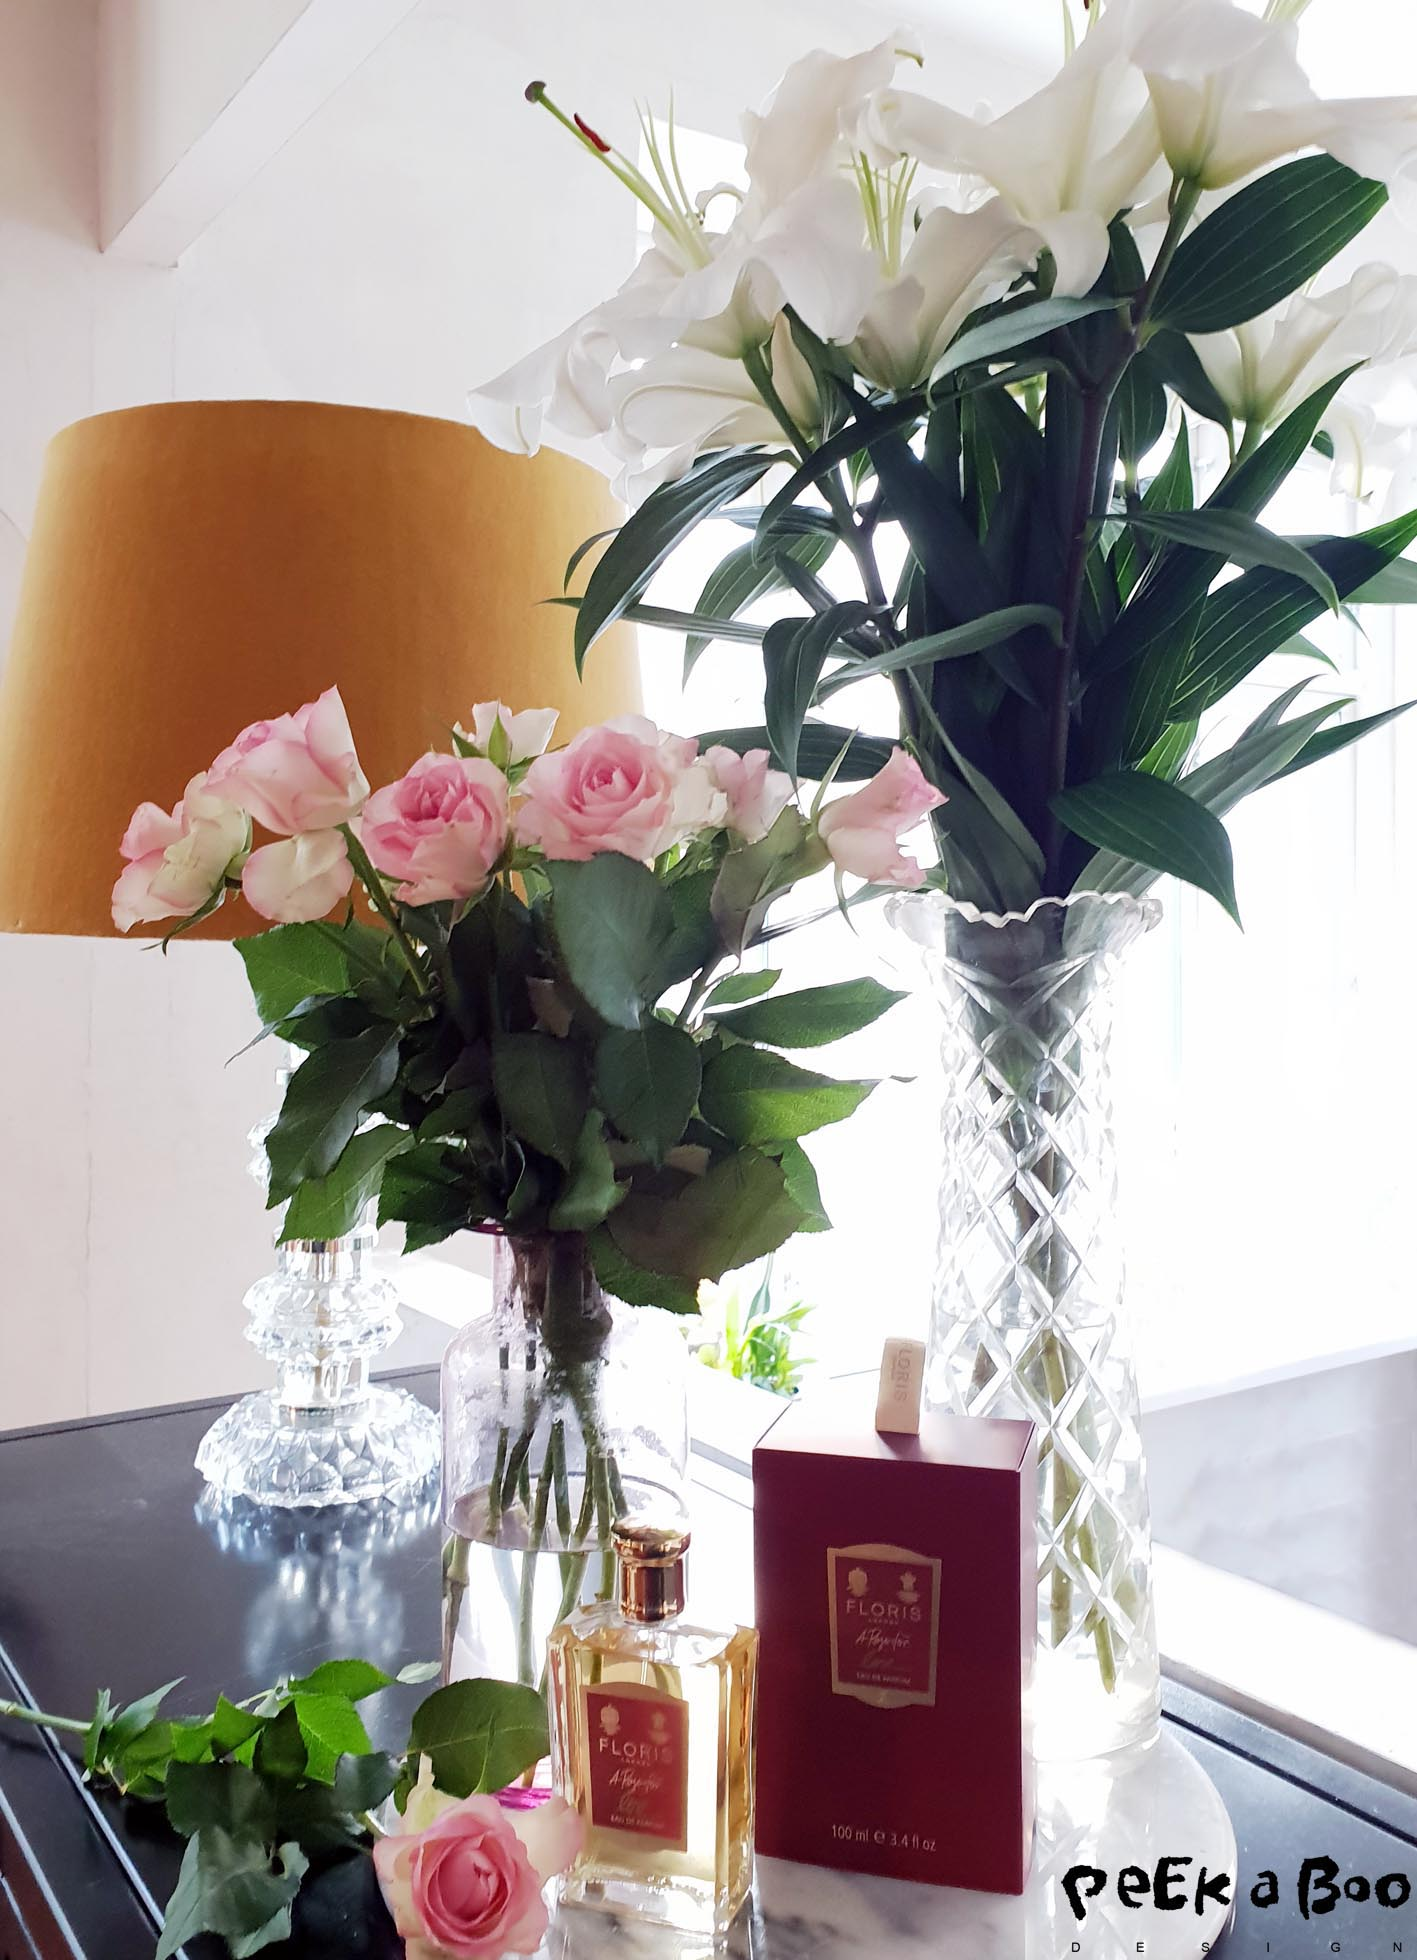 My livingroom with all the flowers and the pretty flacon from Floris.